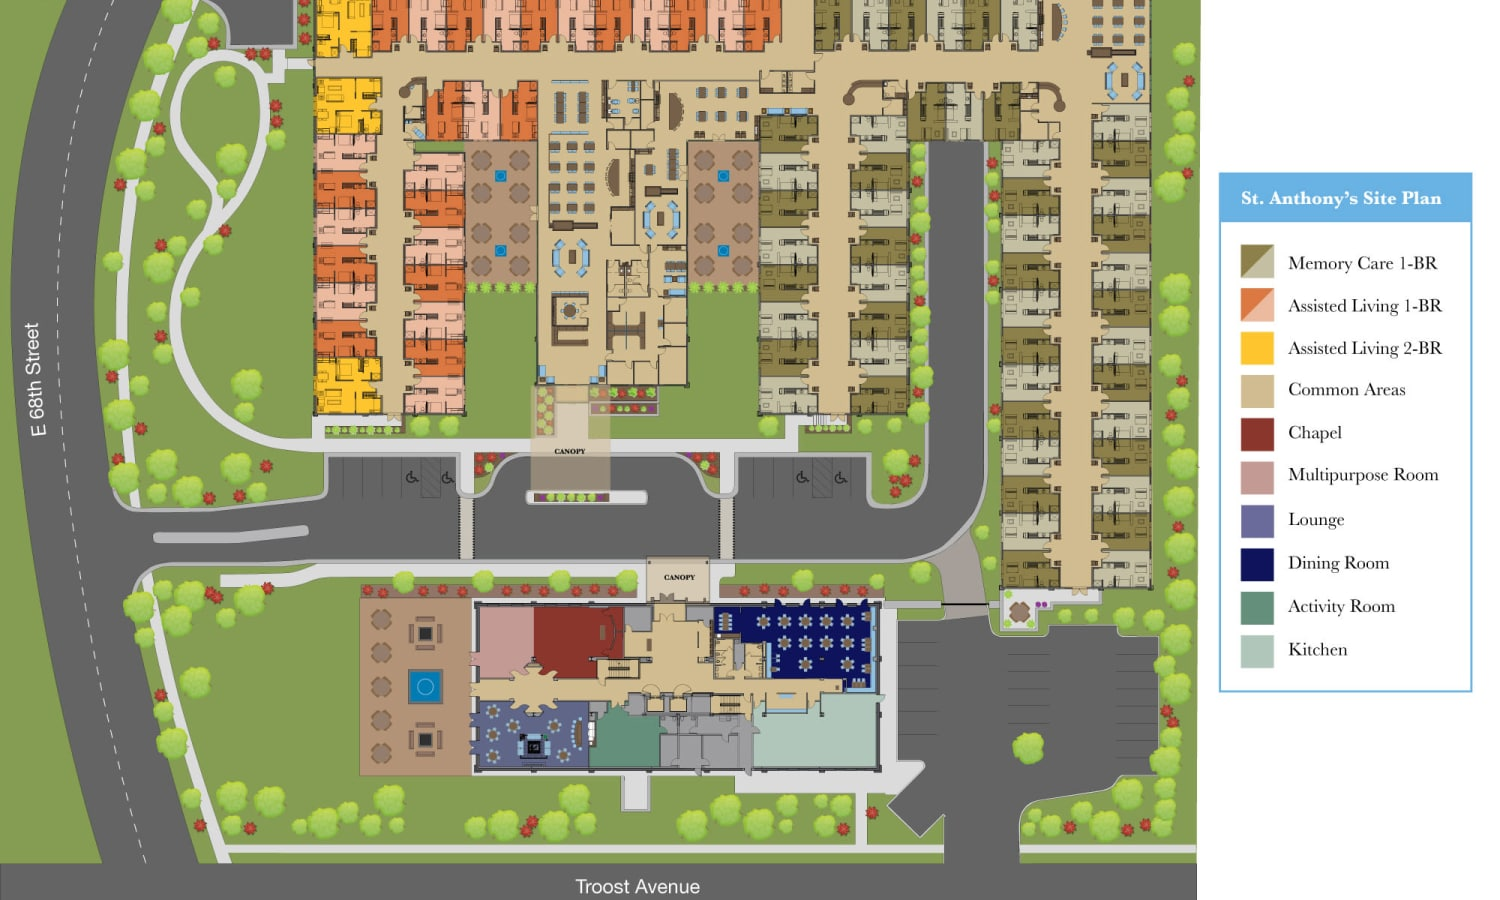 View our site plan